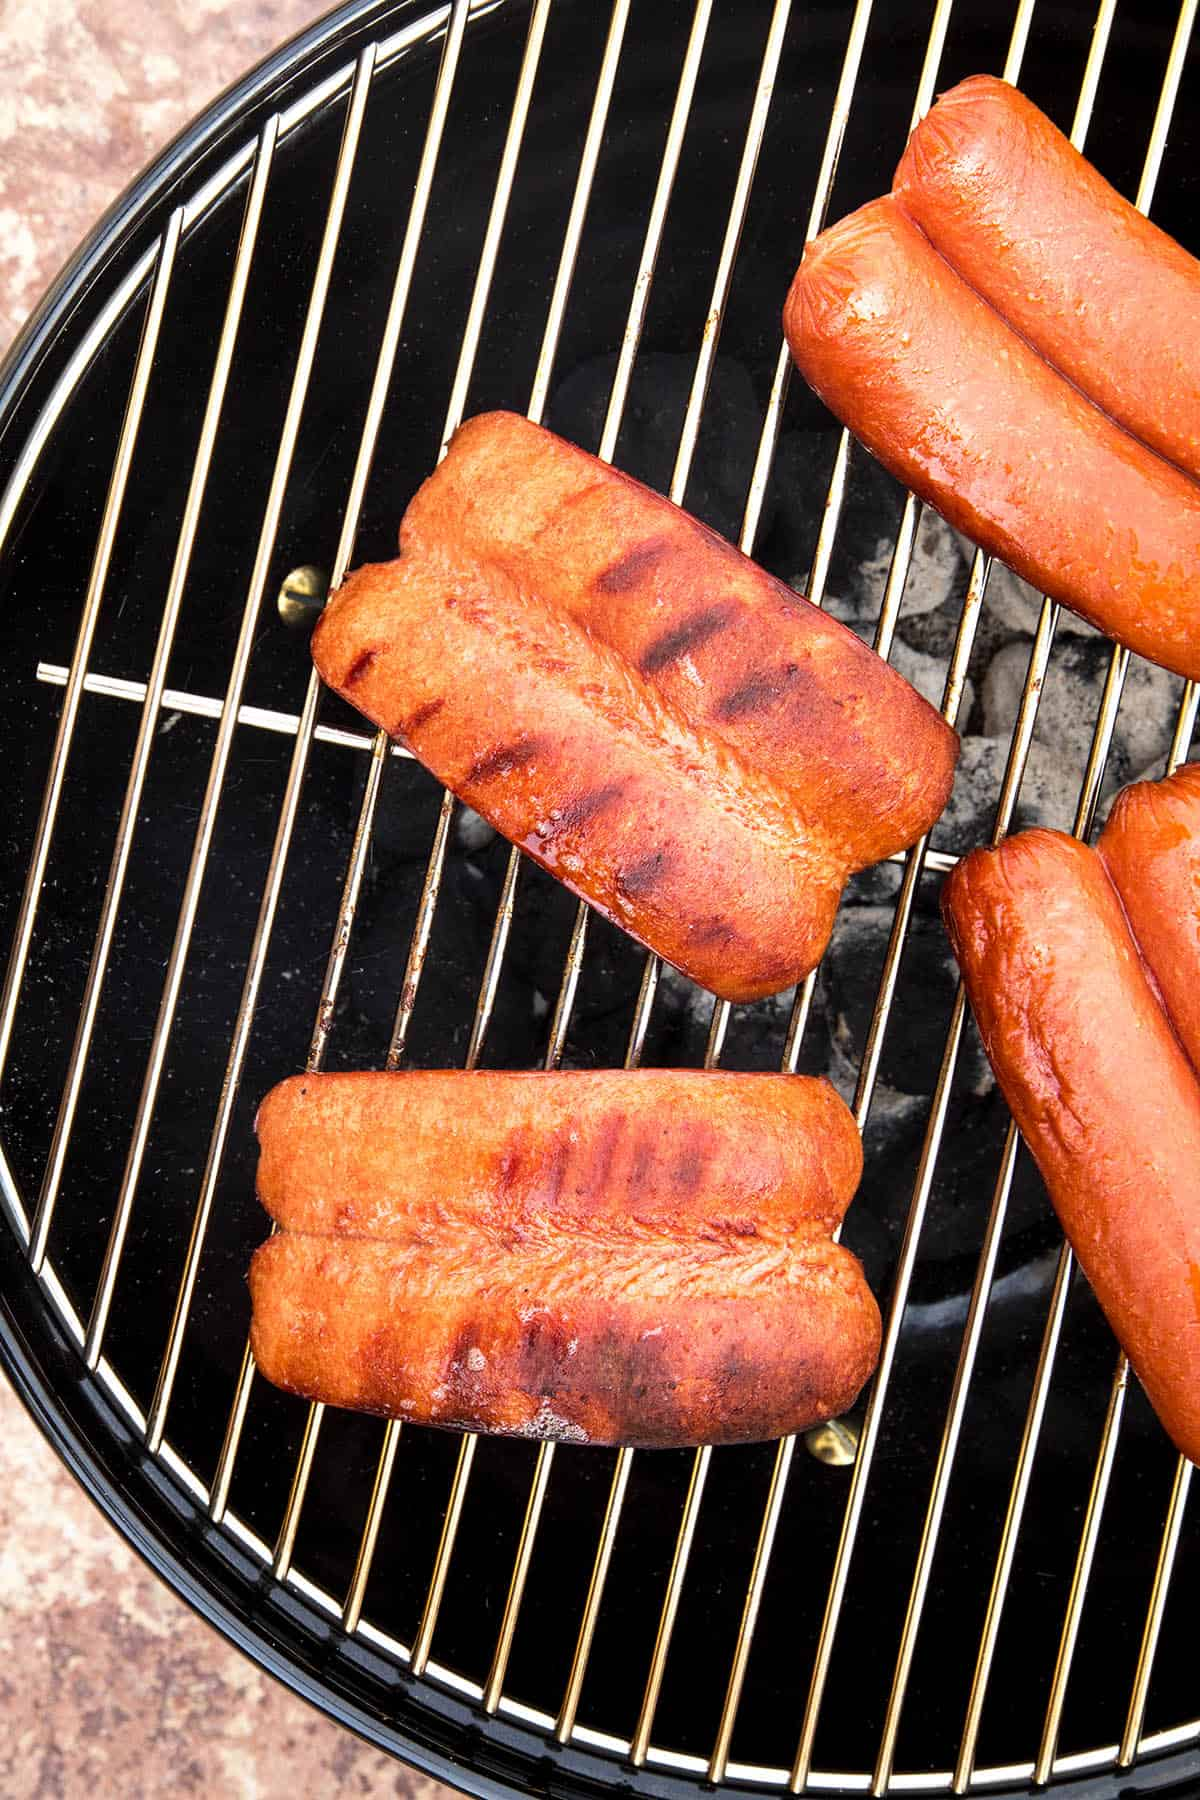 Charred hot dogs on the grill